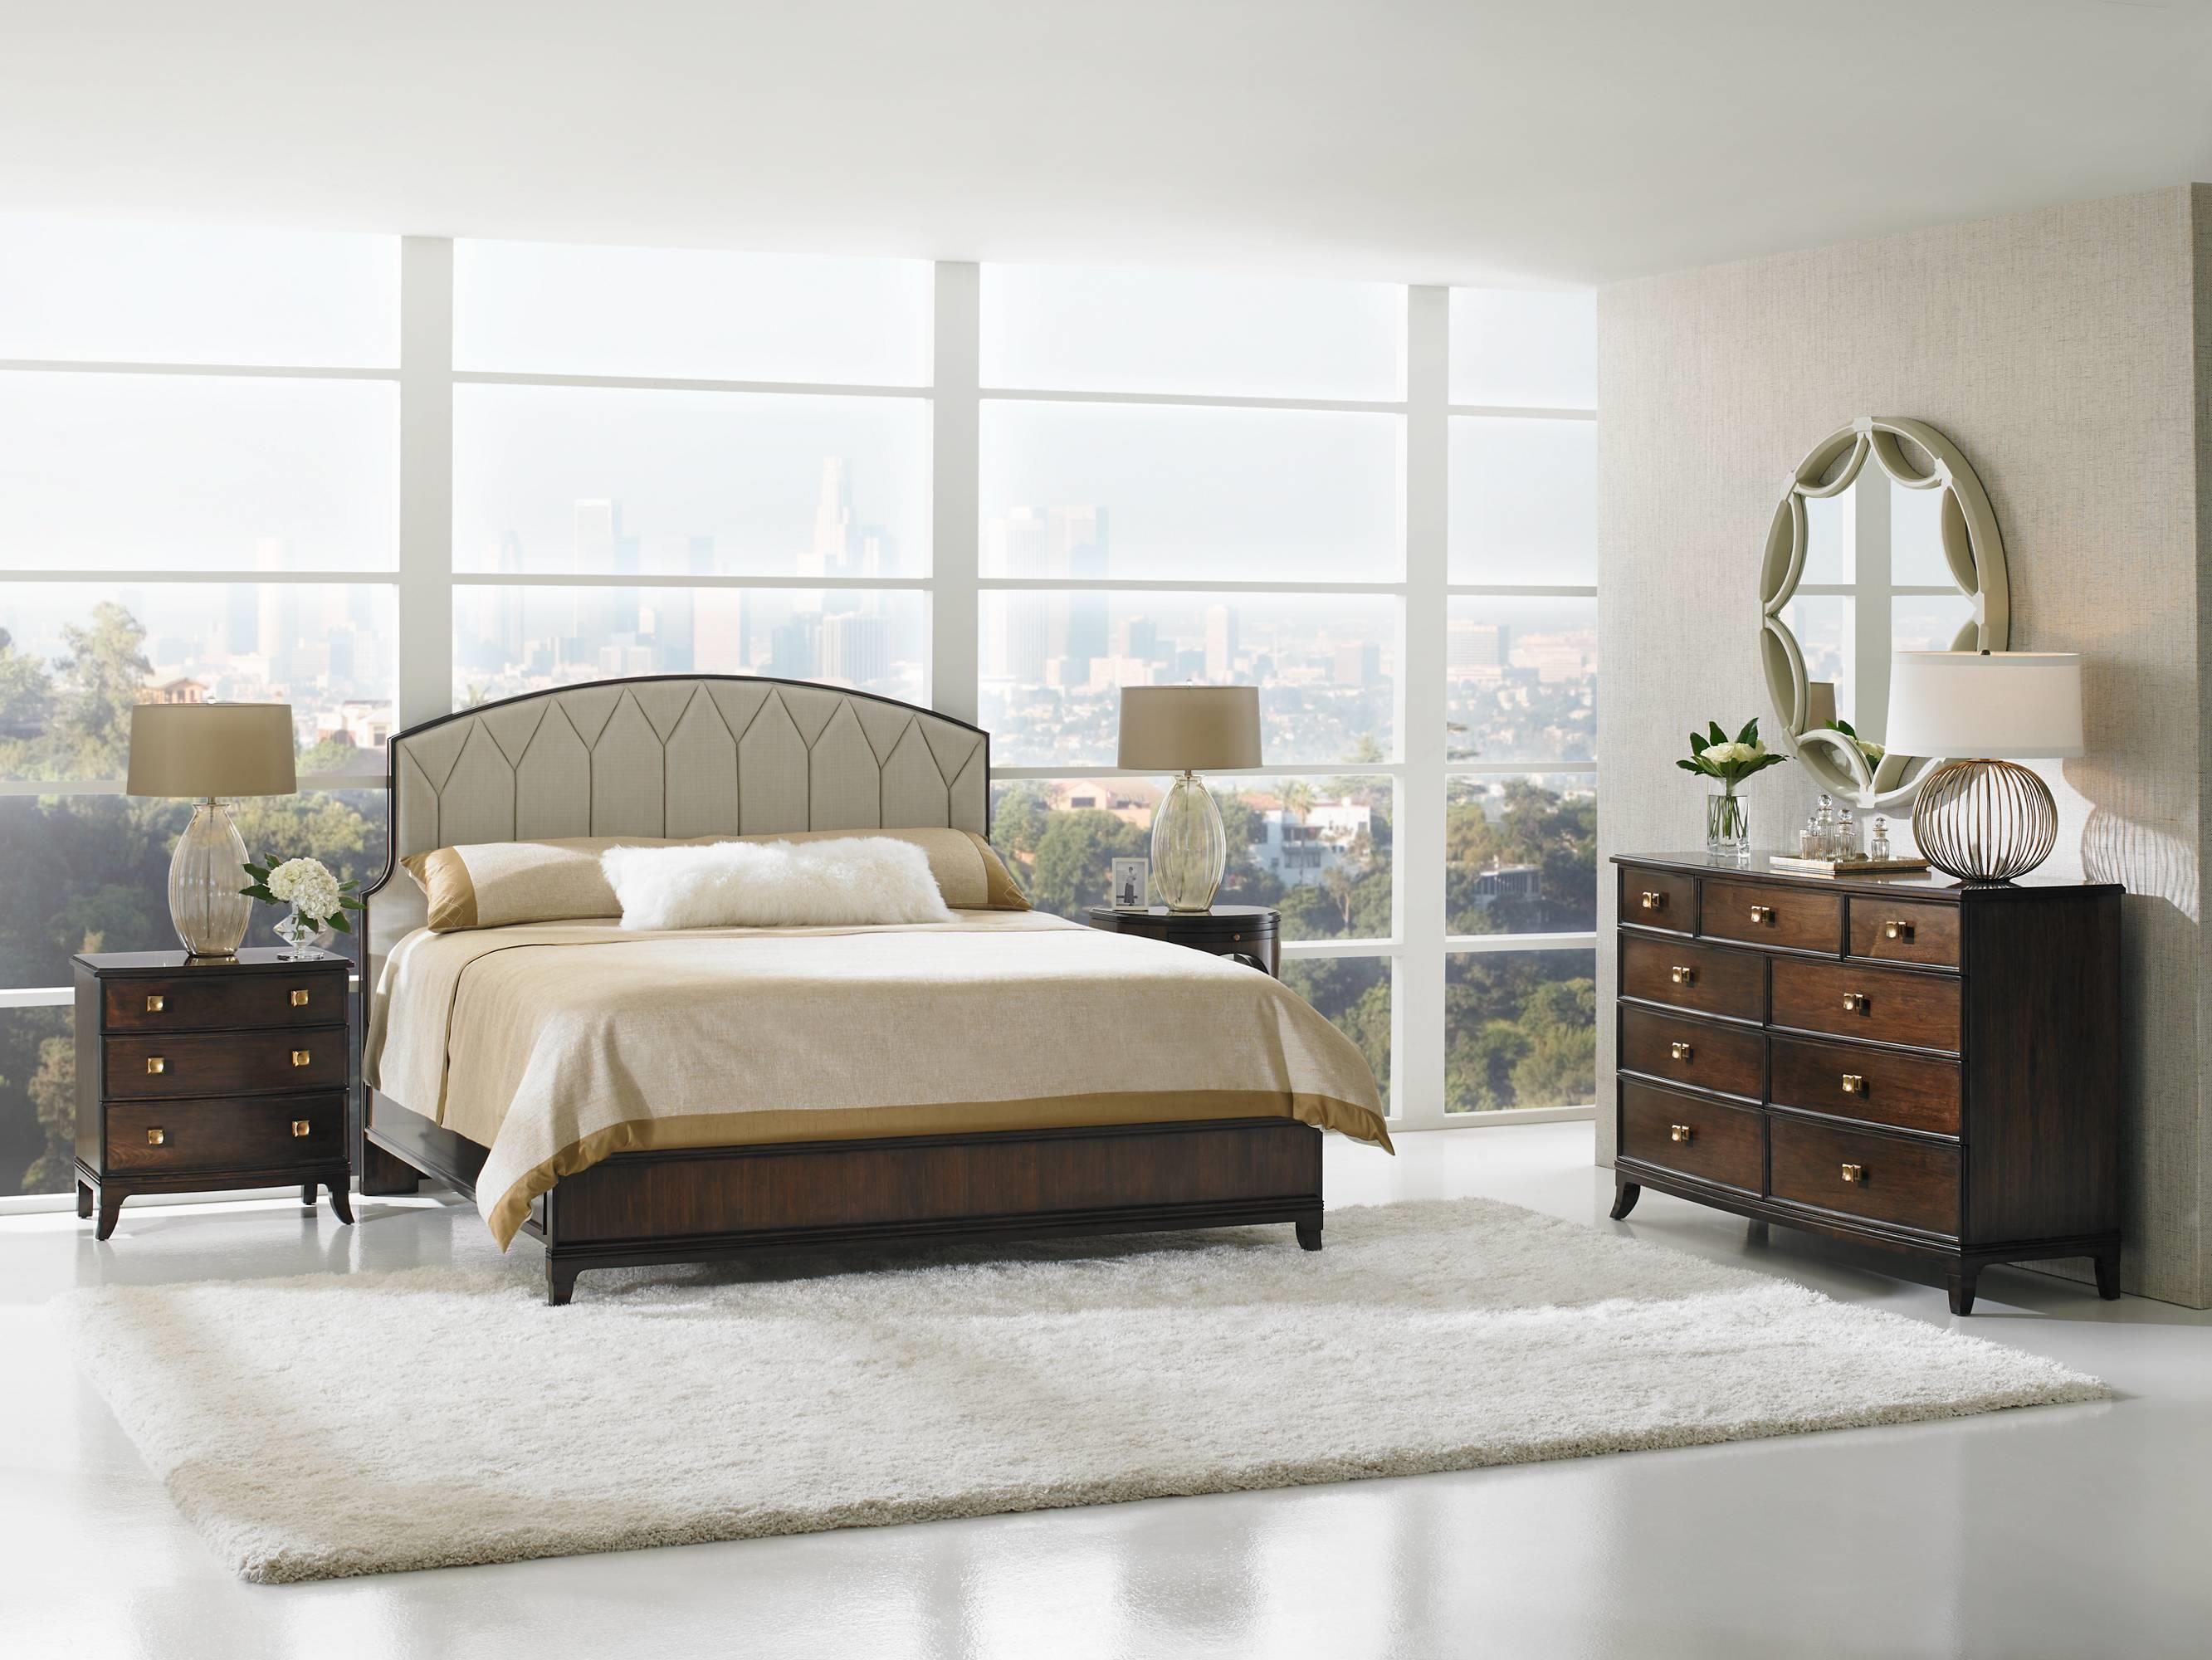 Stanley Furniture Crestaire King Bedroom Group - Item Number: 436-1 K Bedroom Group 2